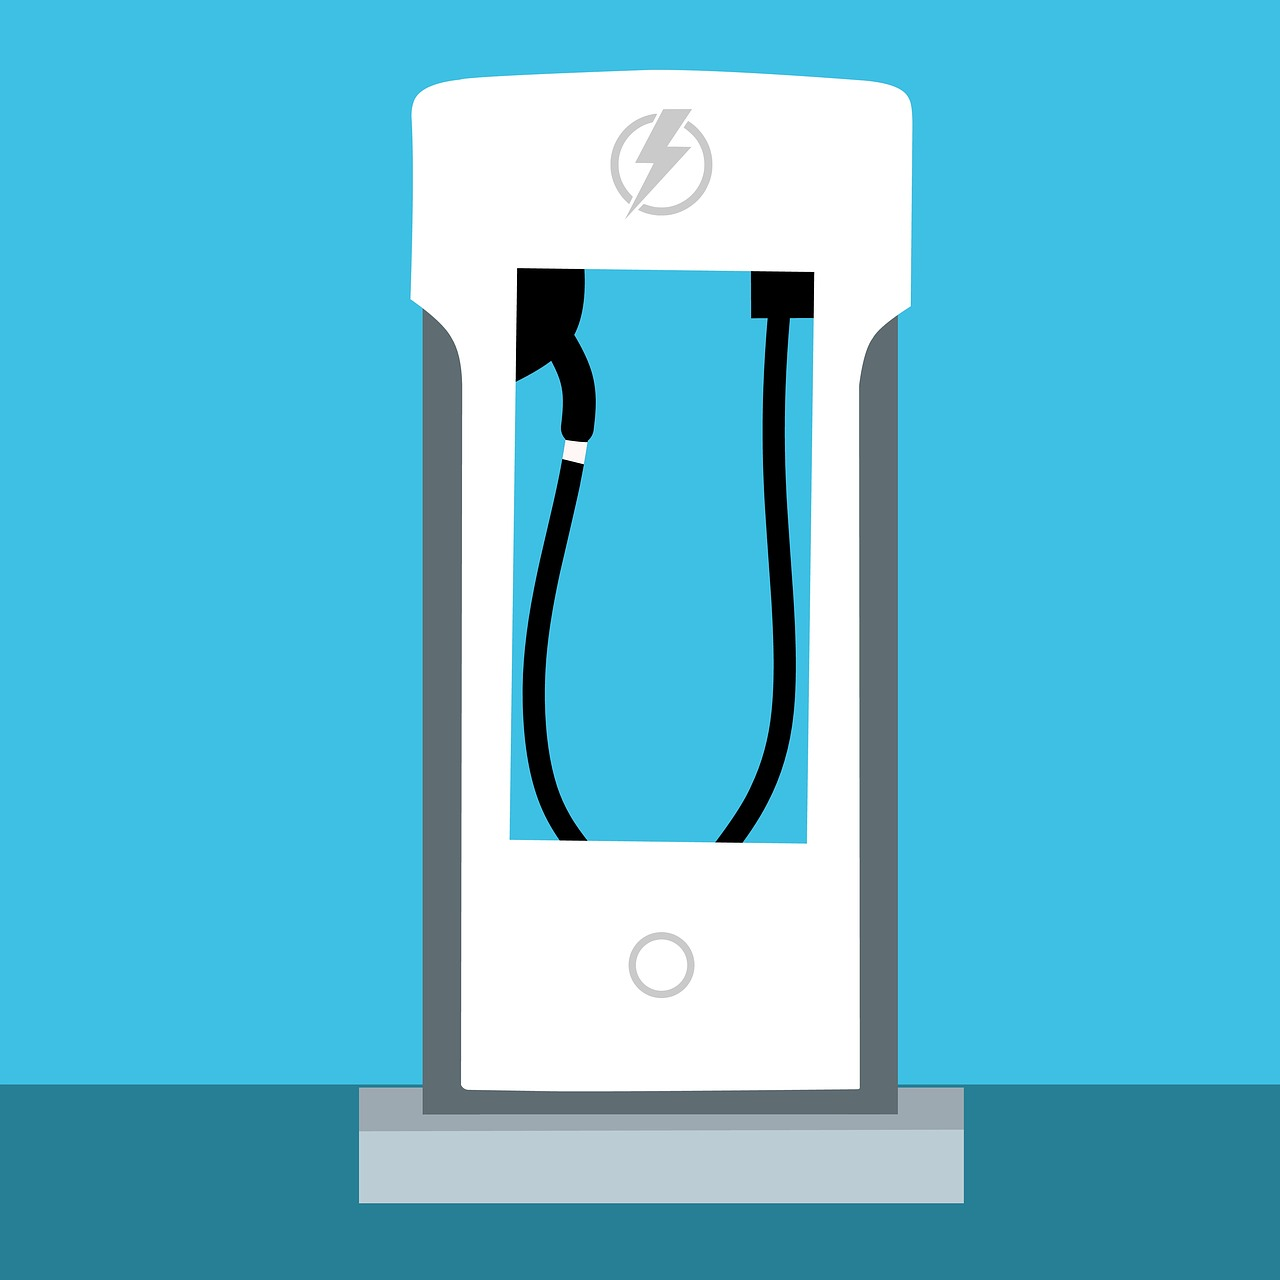 Electric Vehicle Ev Battery Market Set For Explosive Growth Over Next Five Years Reuters Events Supply Chain Logistics Business Intelligence